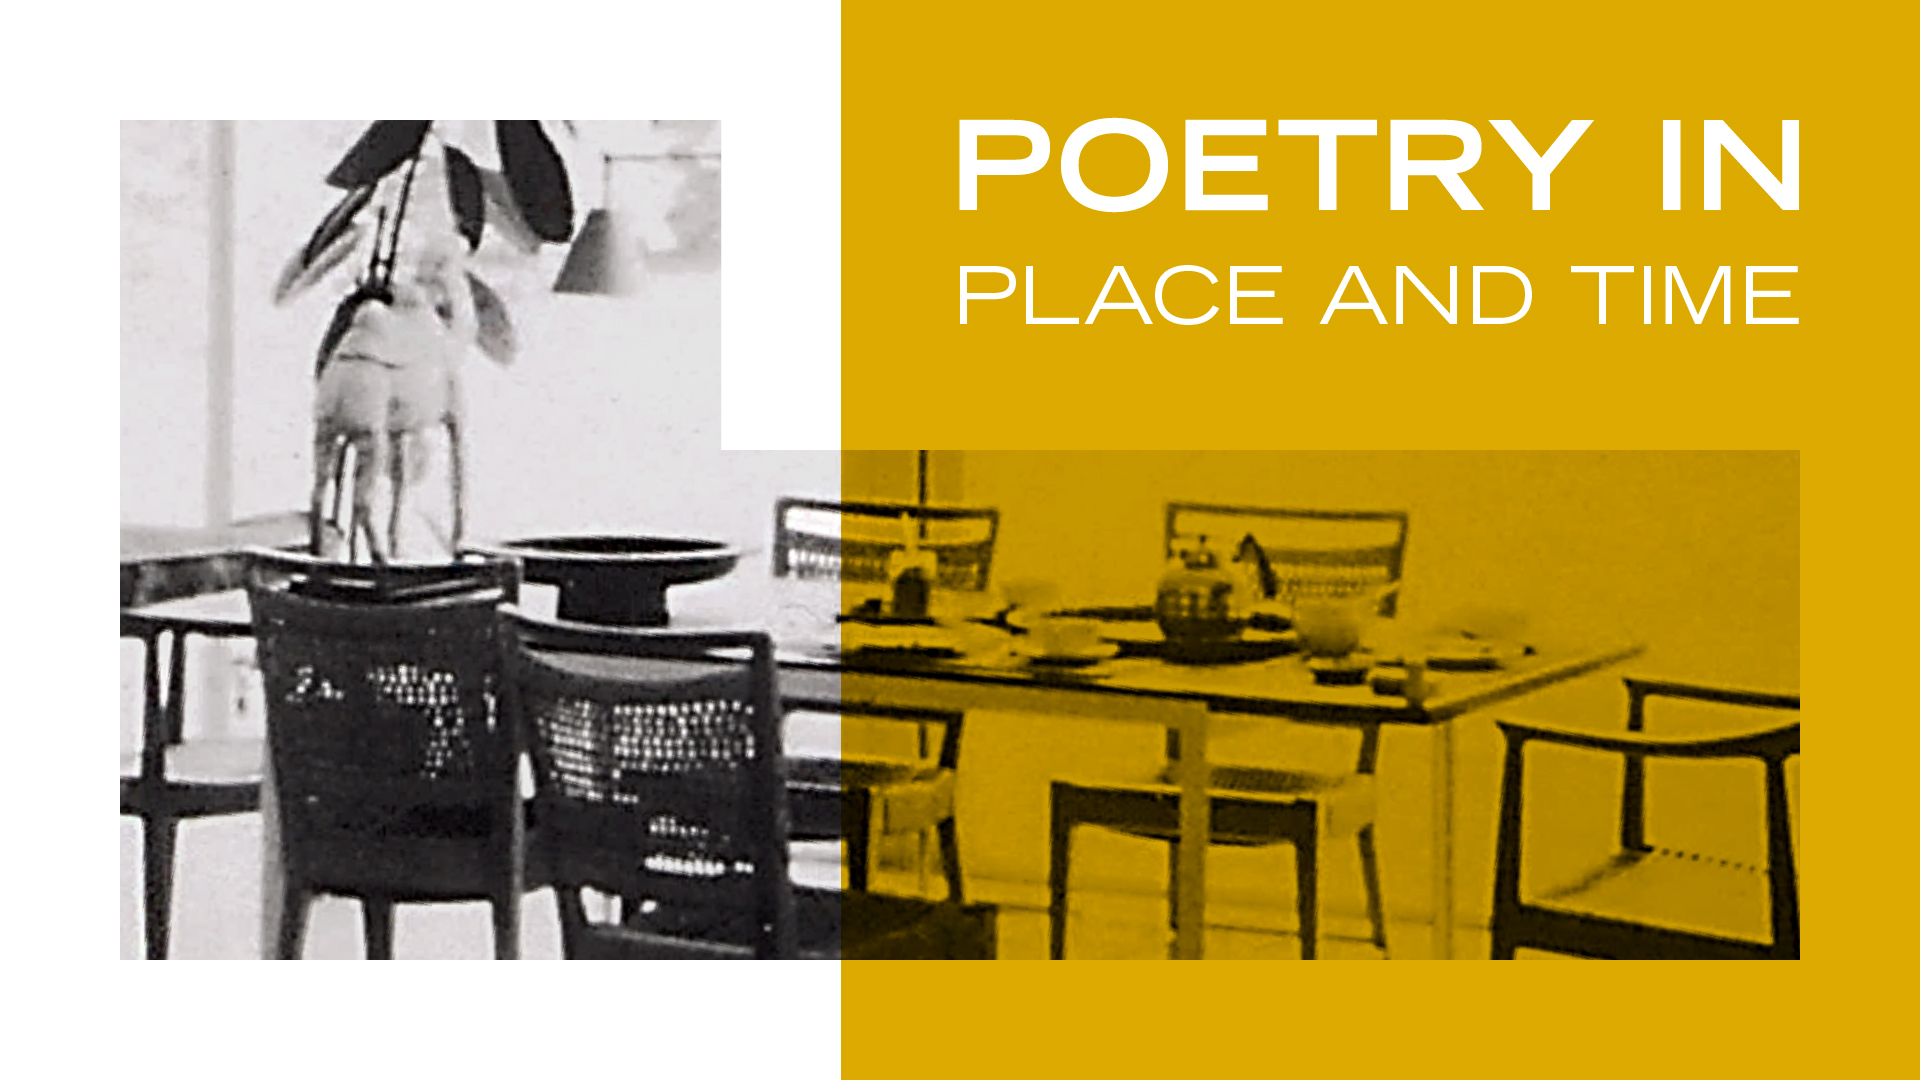 Architea: Poetry in Place and Time